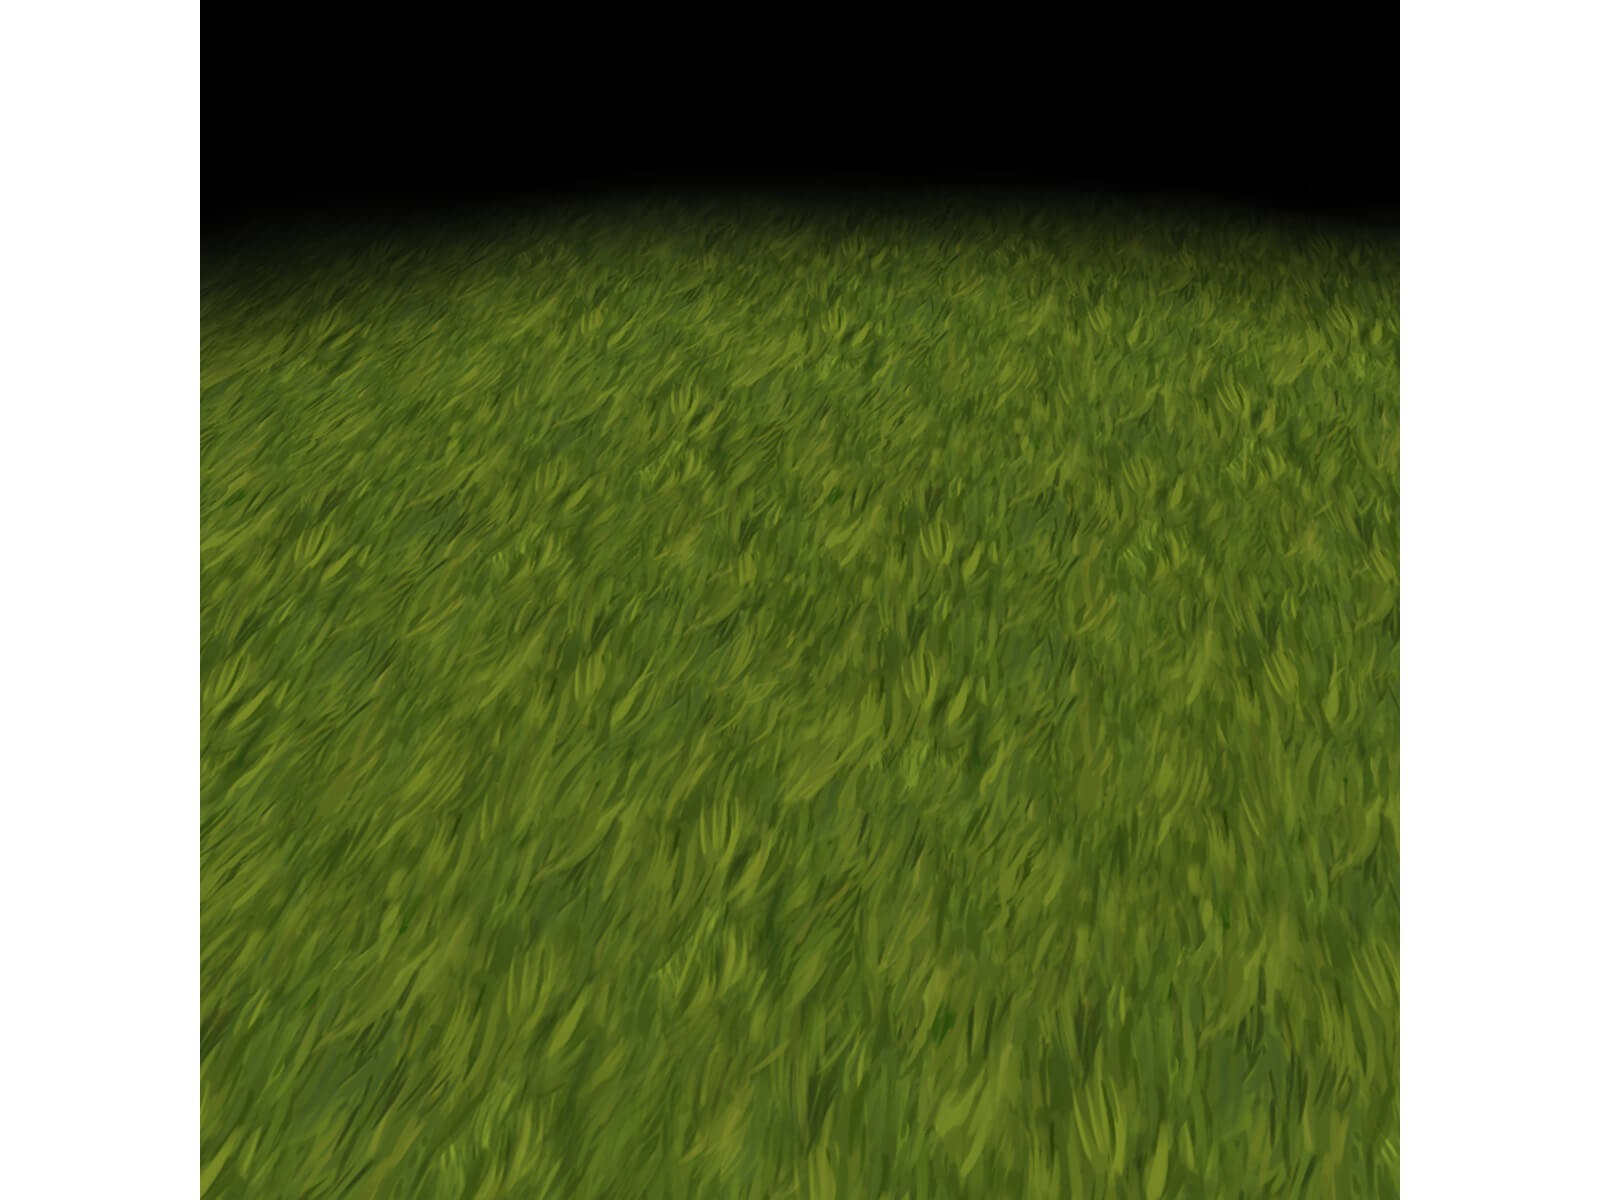 Grass texture 2 hand painted